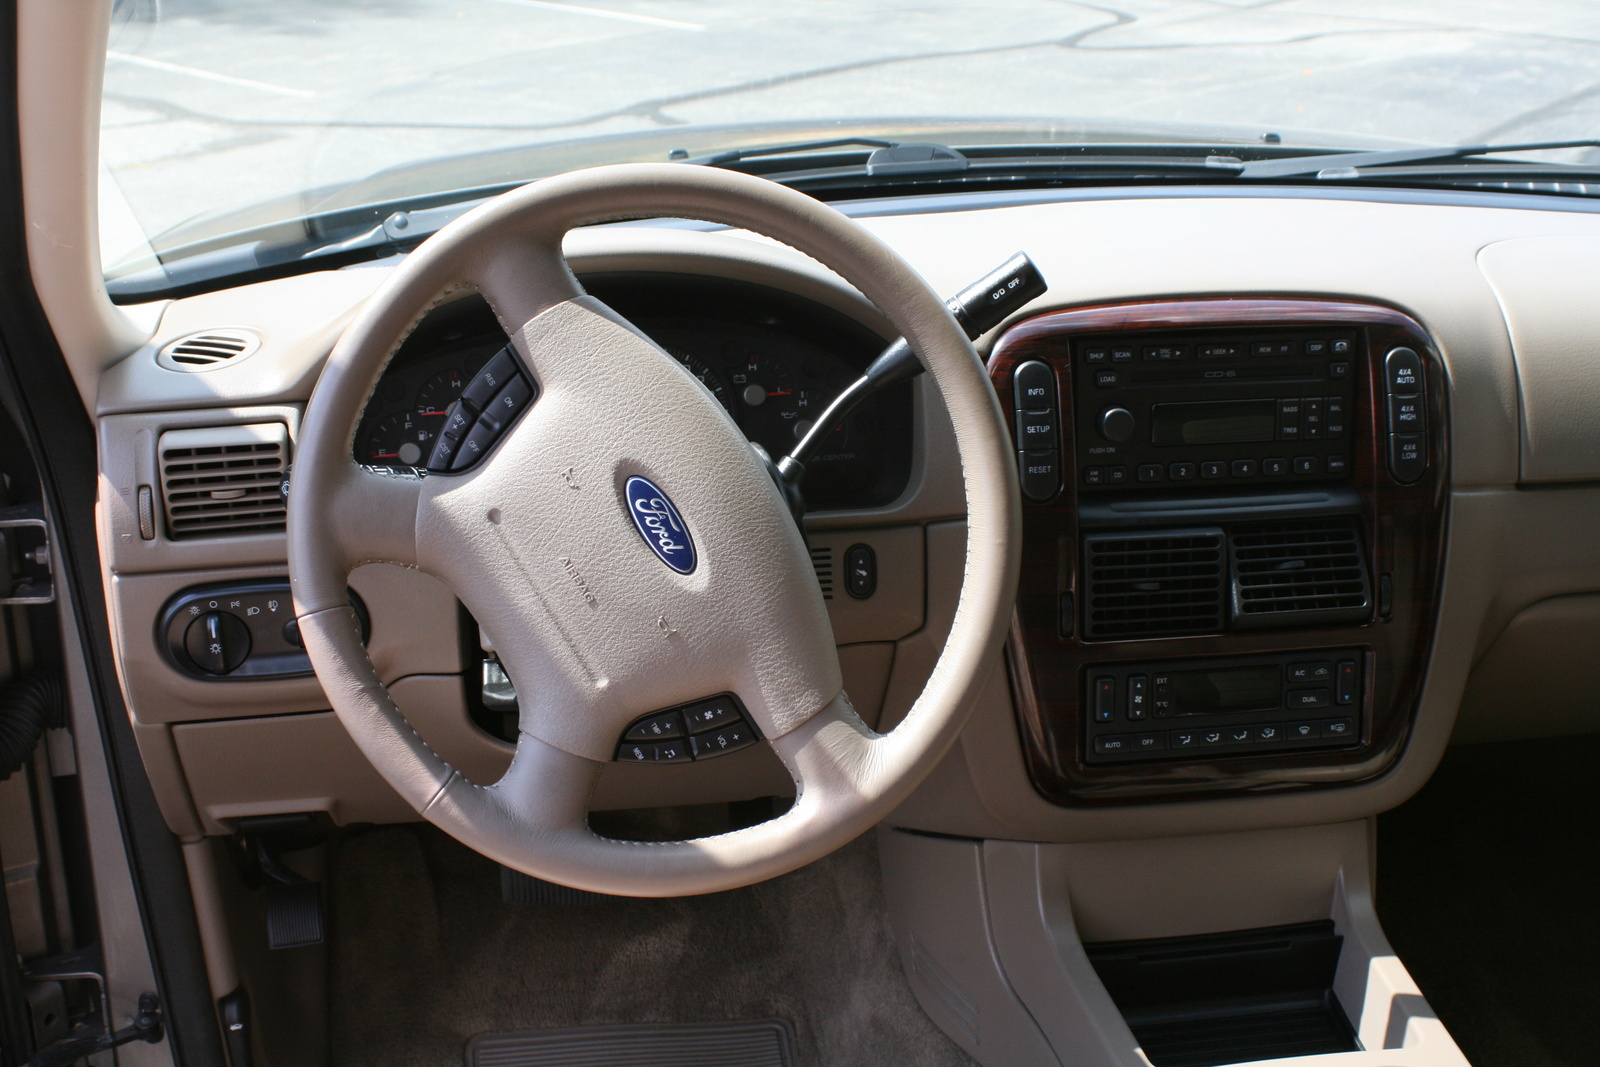 2003 Ford Explorer Interior Image